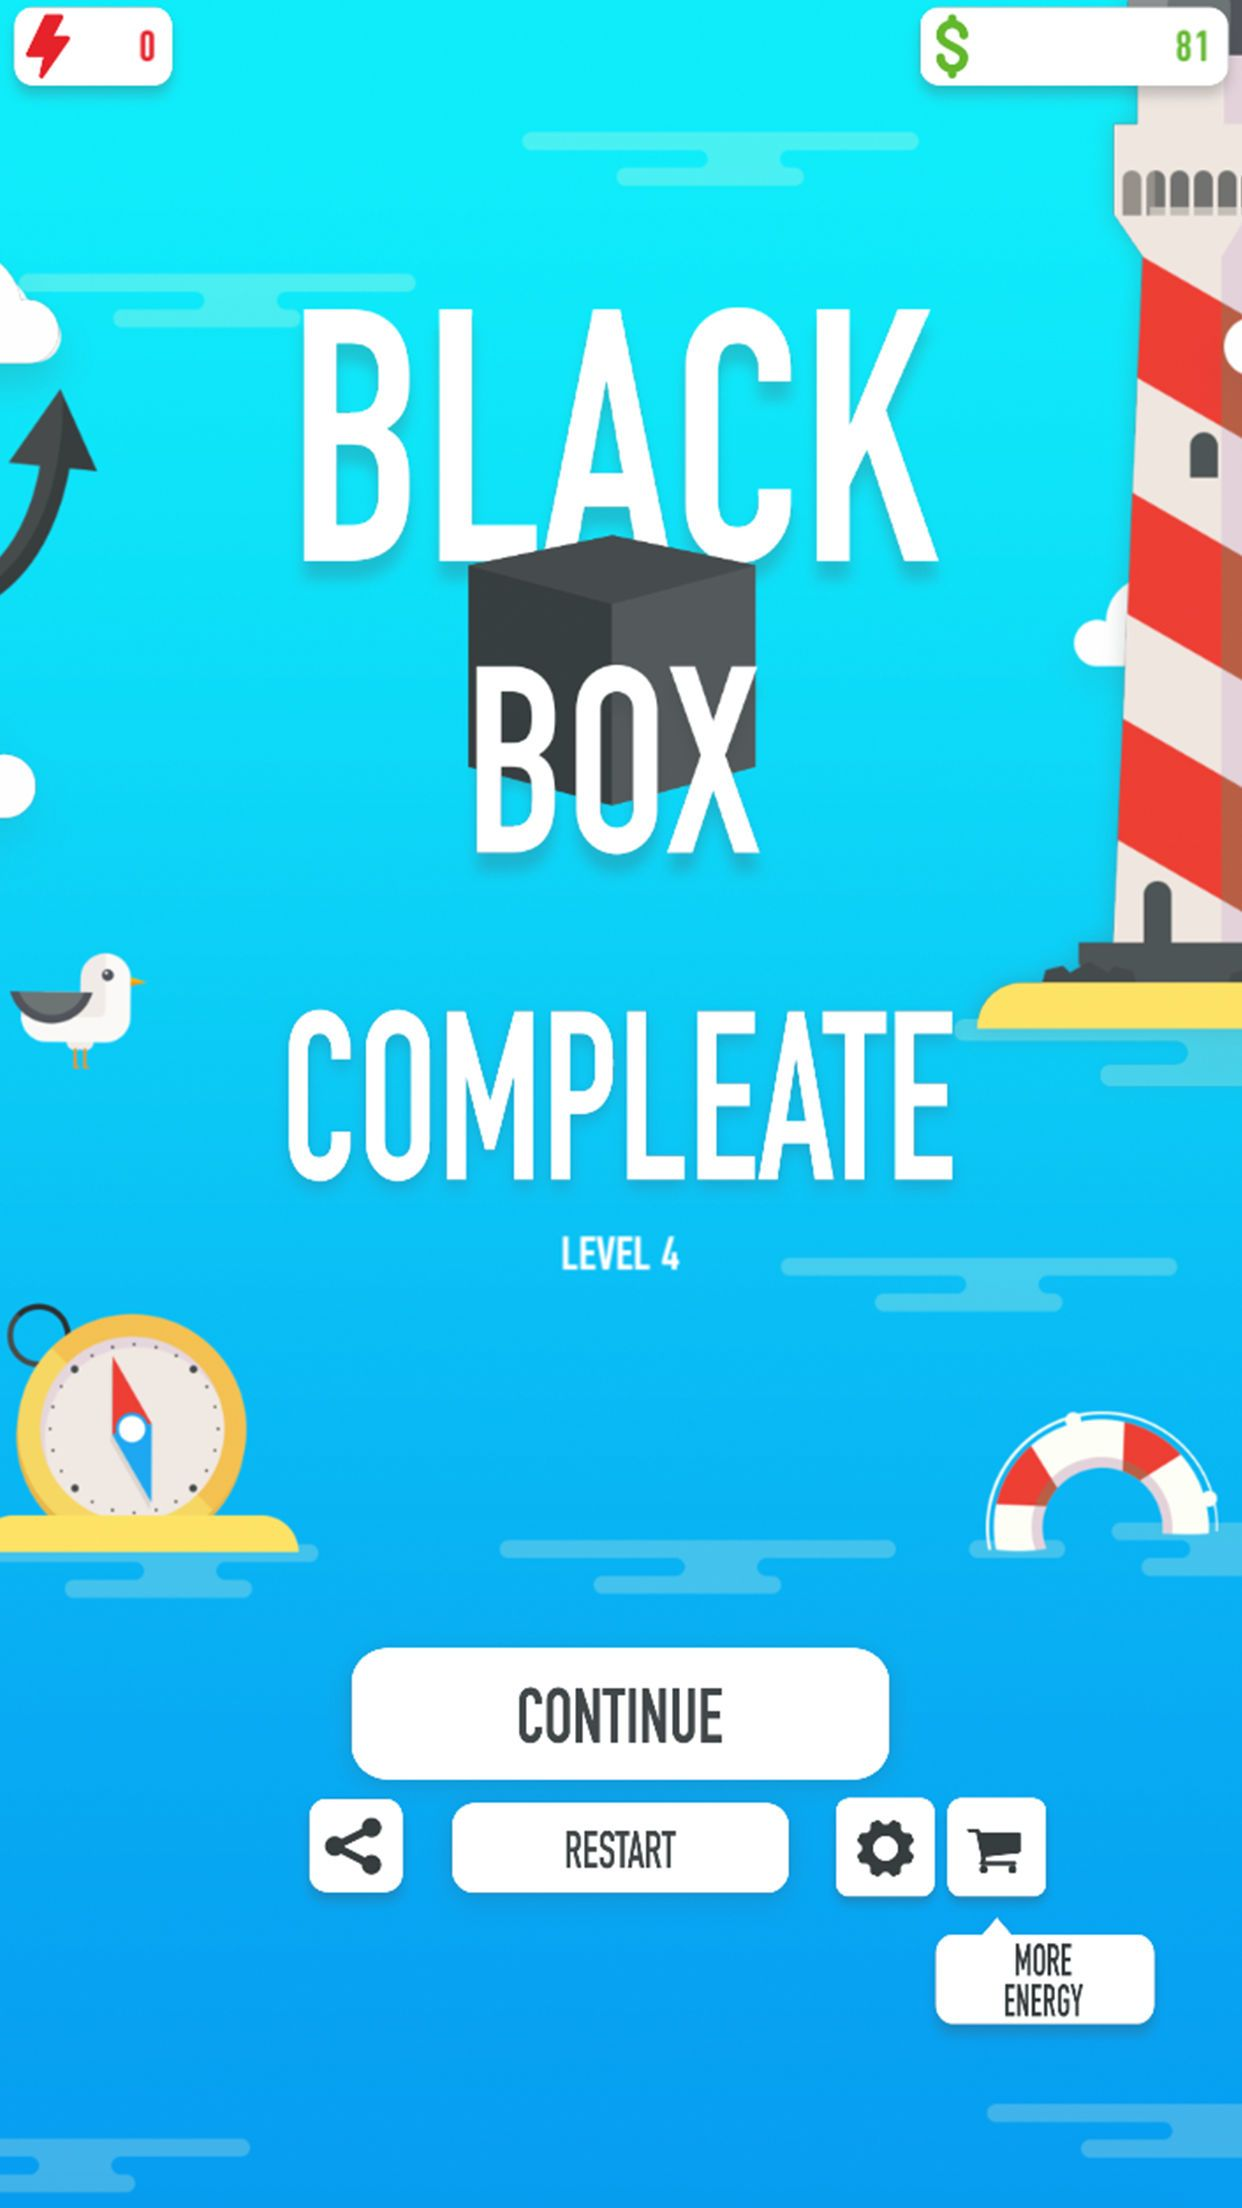 Black Box - Unity game for iOS Screenshot 4